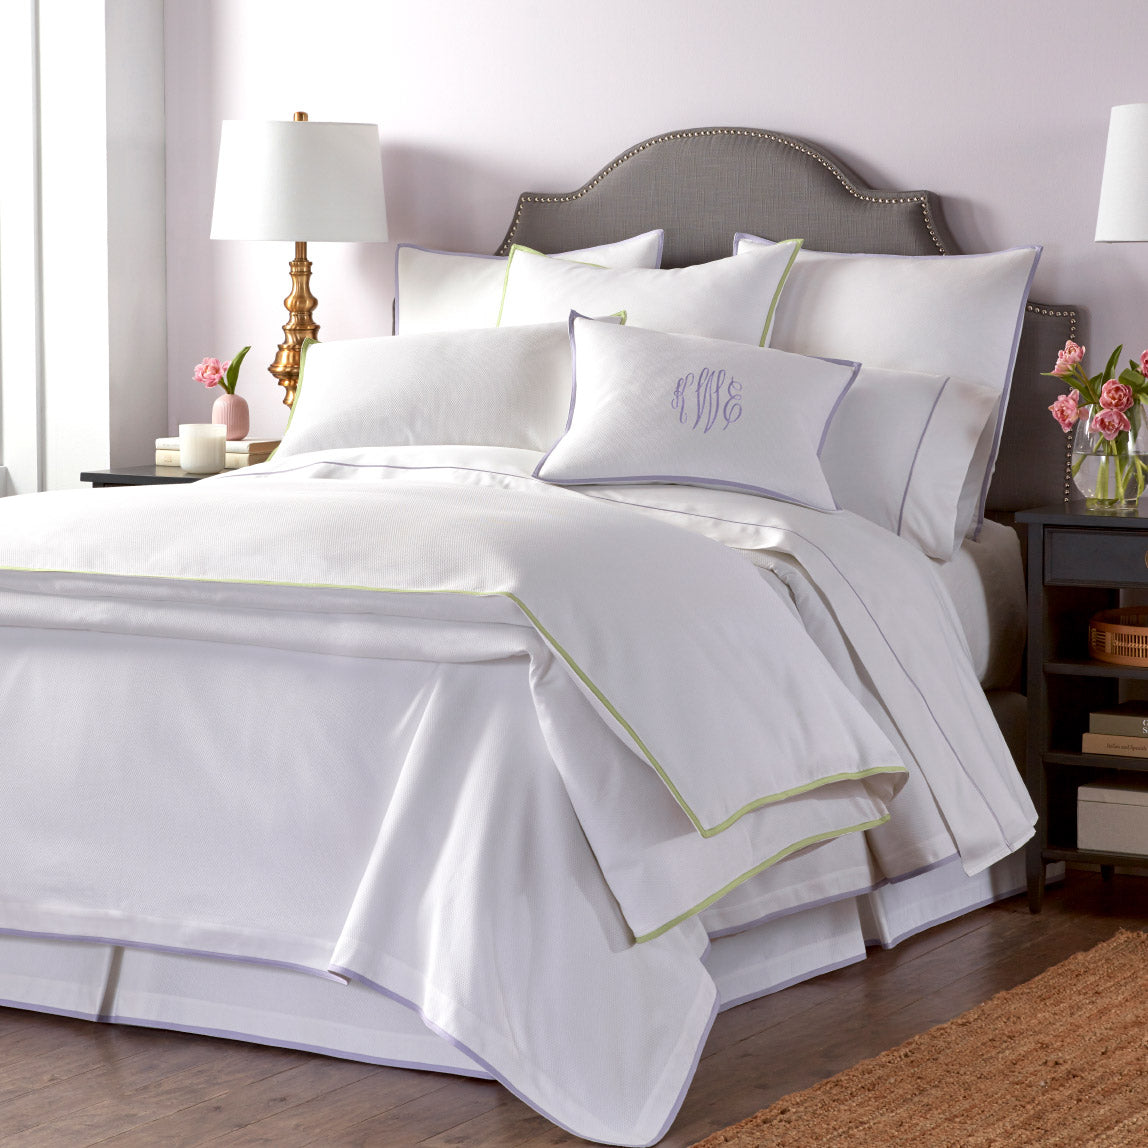 Pique Bed Skirt shown with Pique coverlet, duvet and shams.